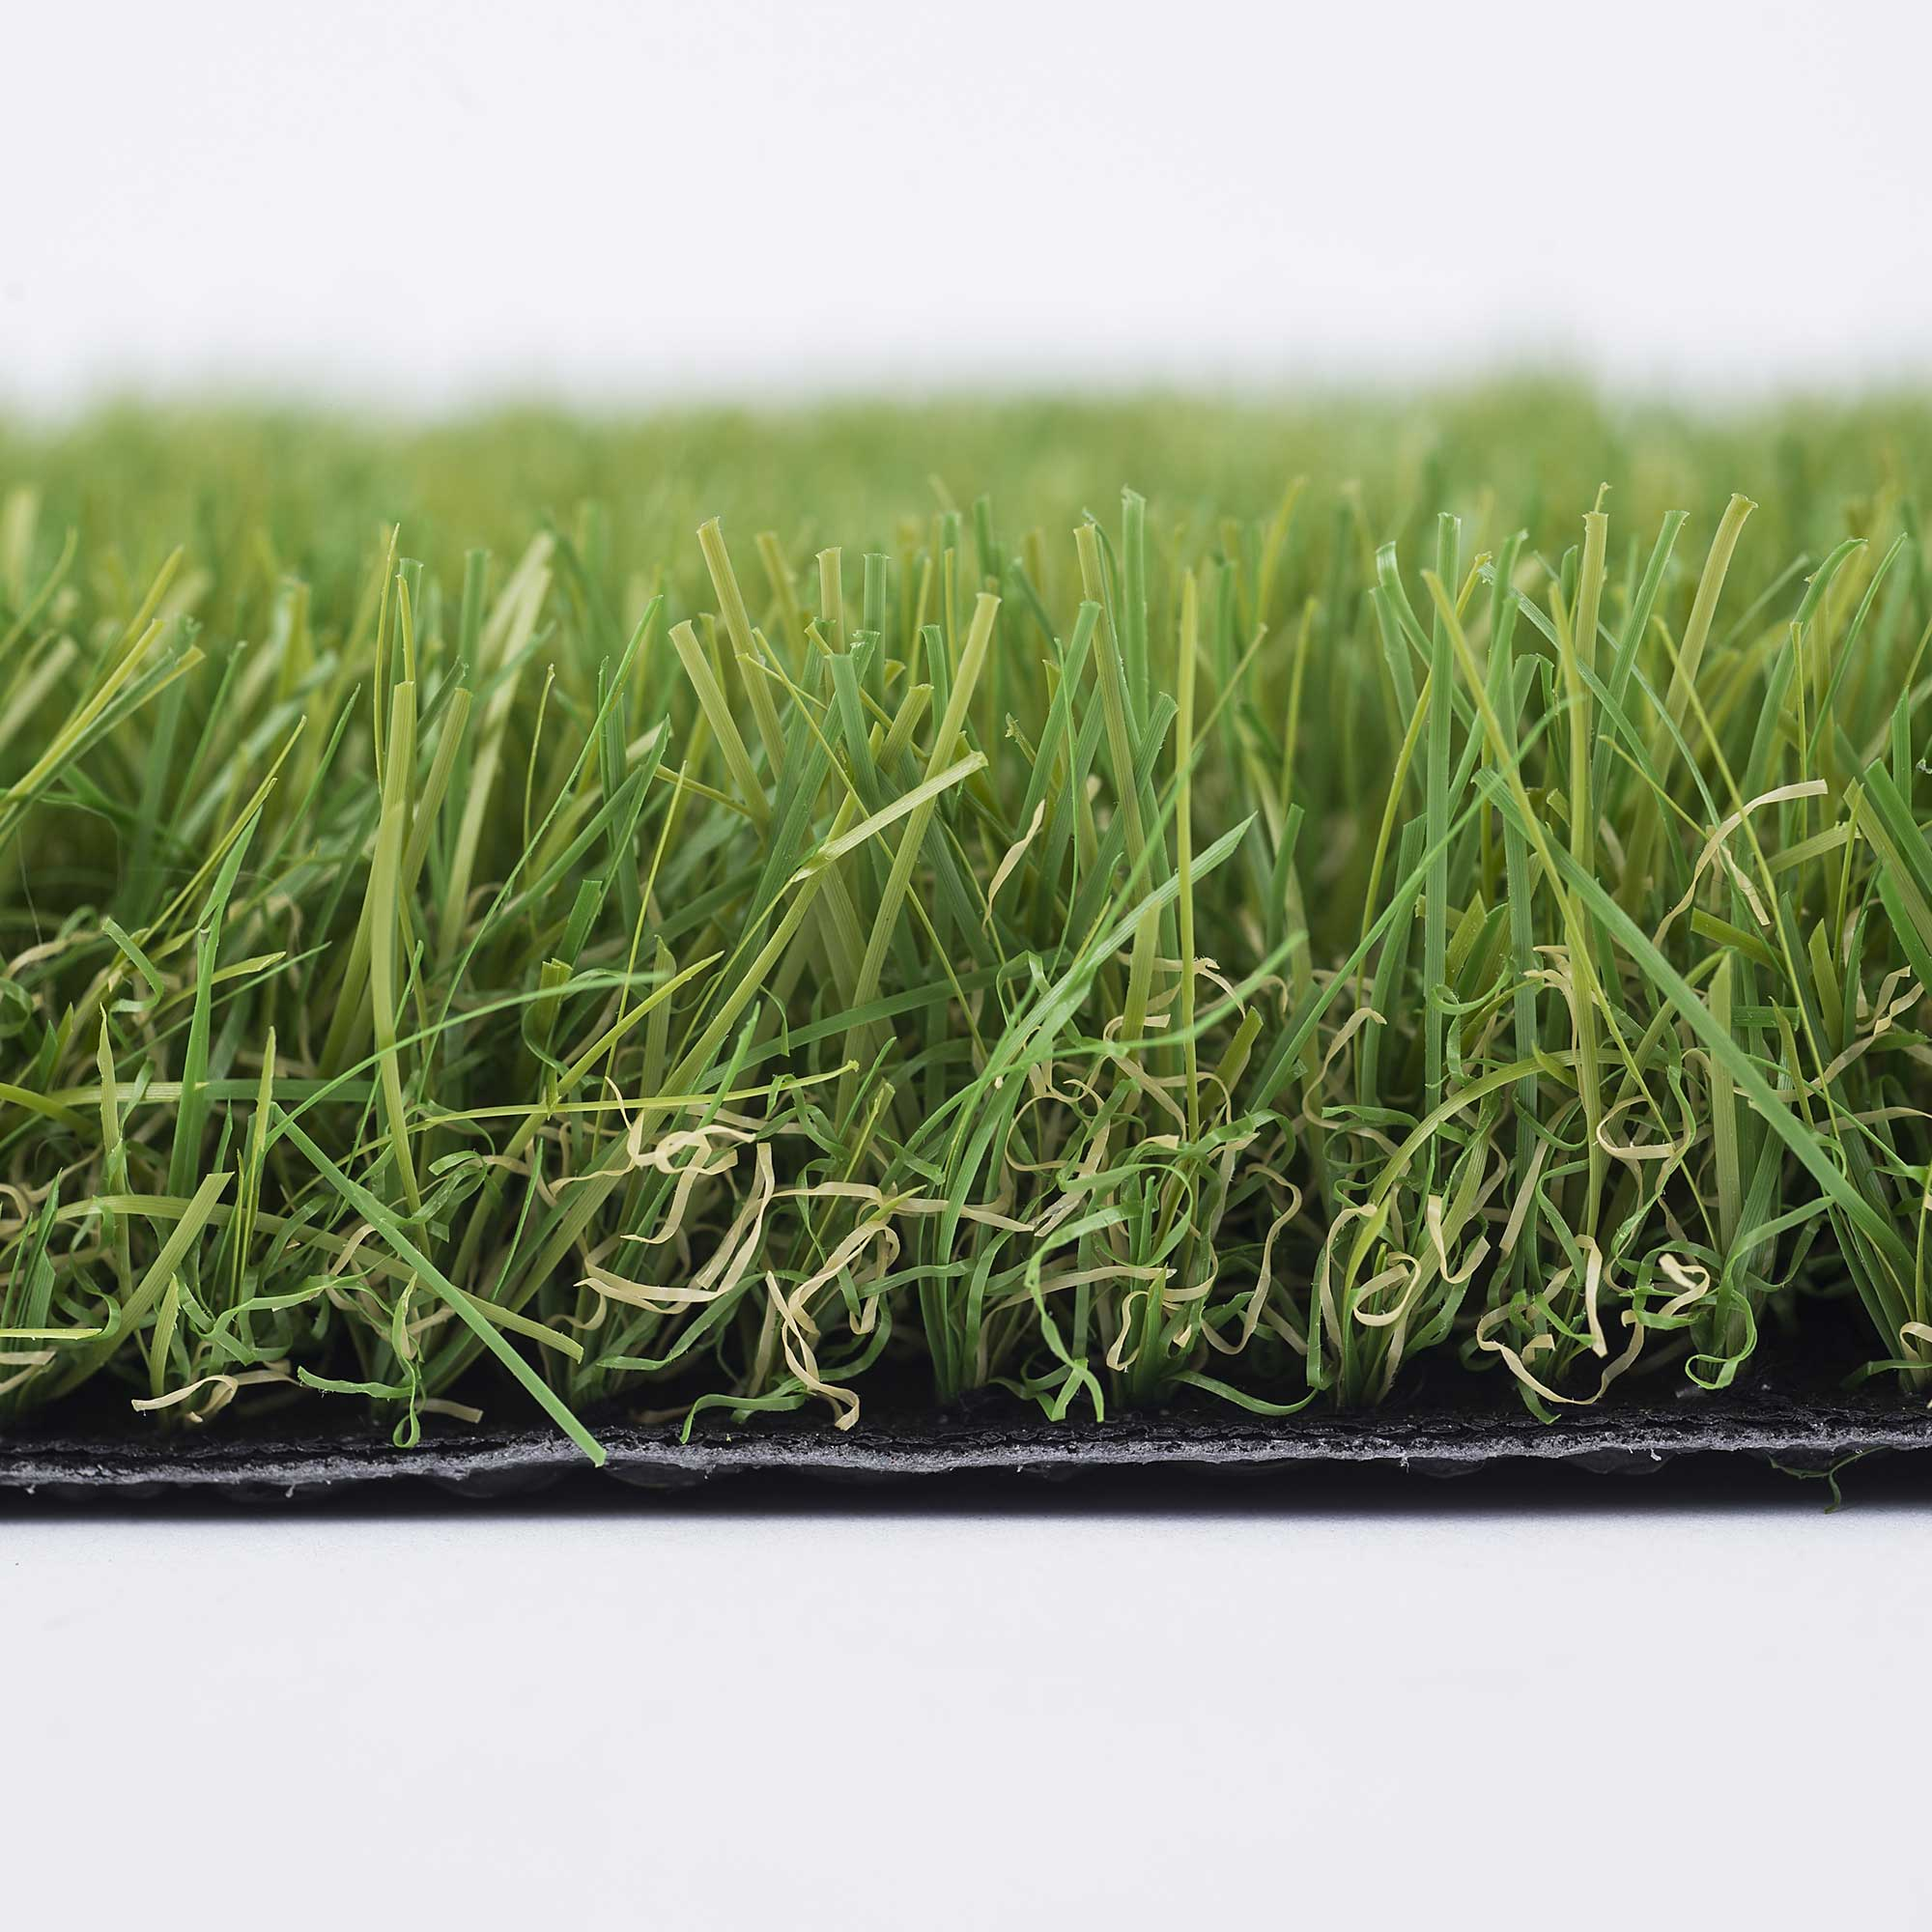 Authentic Artificial Grass